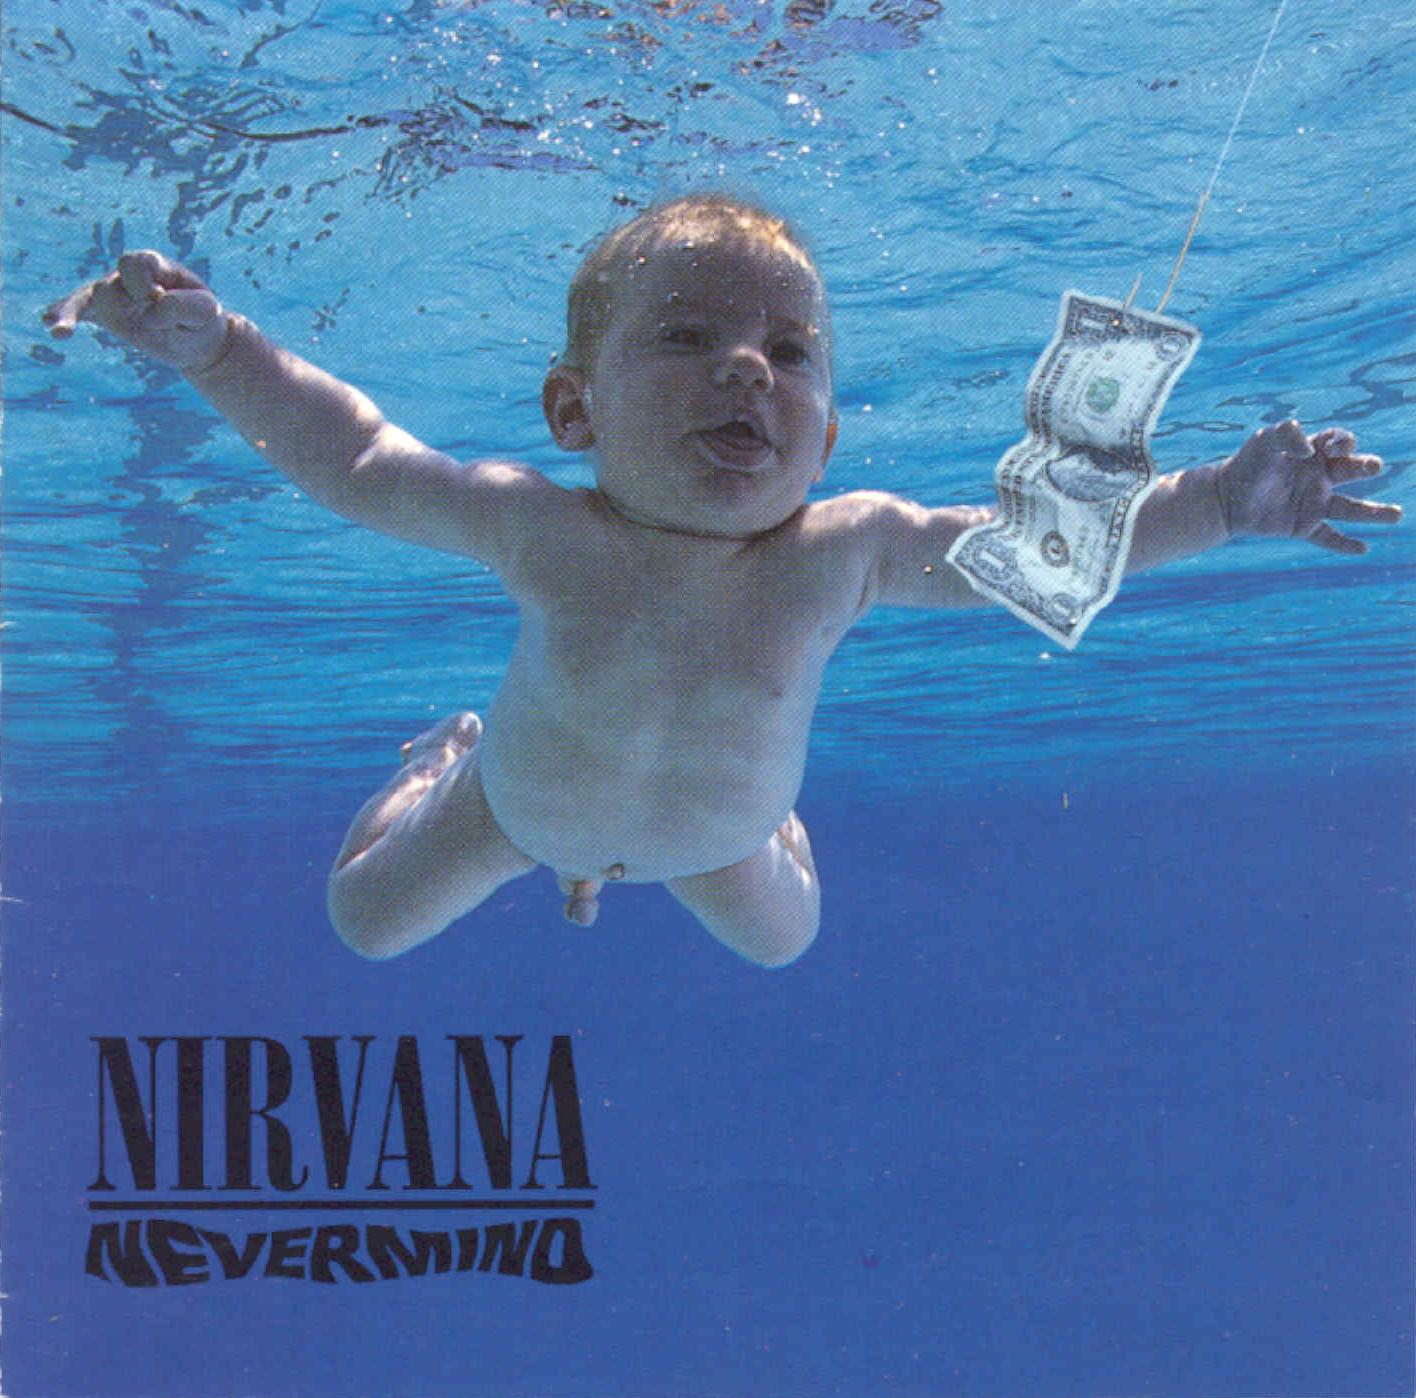 nevermind | album covers wiki | fandom poweredwikia, Powerpoint templates